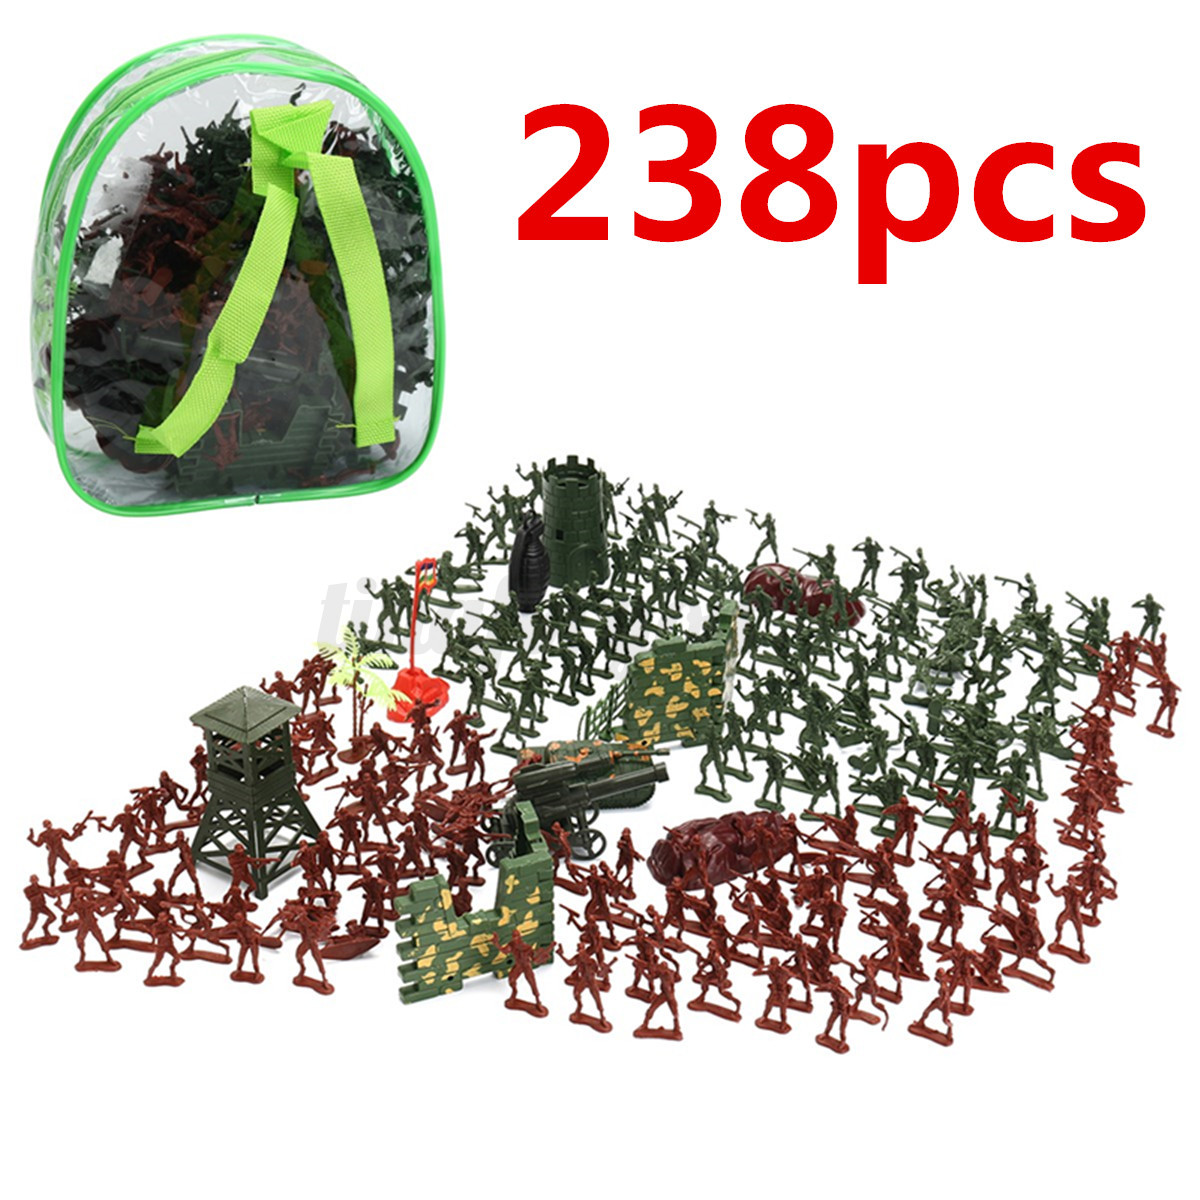 238PCS-Military-Plastic-Soldiers-Army-Men-Figures-Tanks-Accessories-Play-Set-Toy